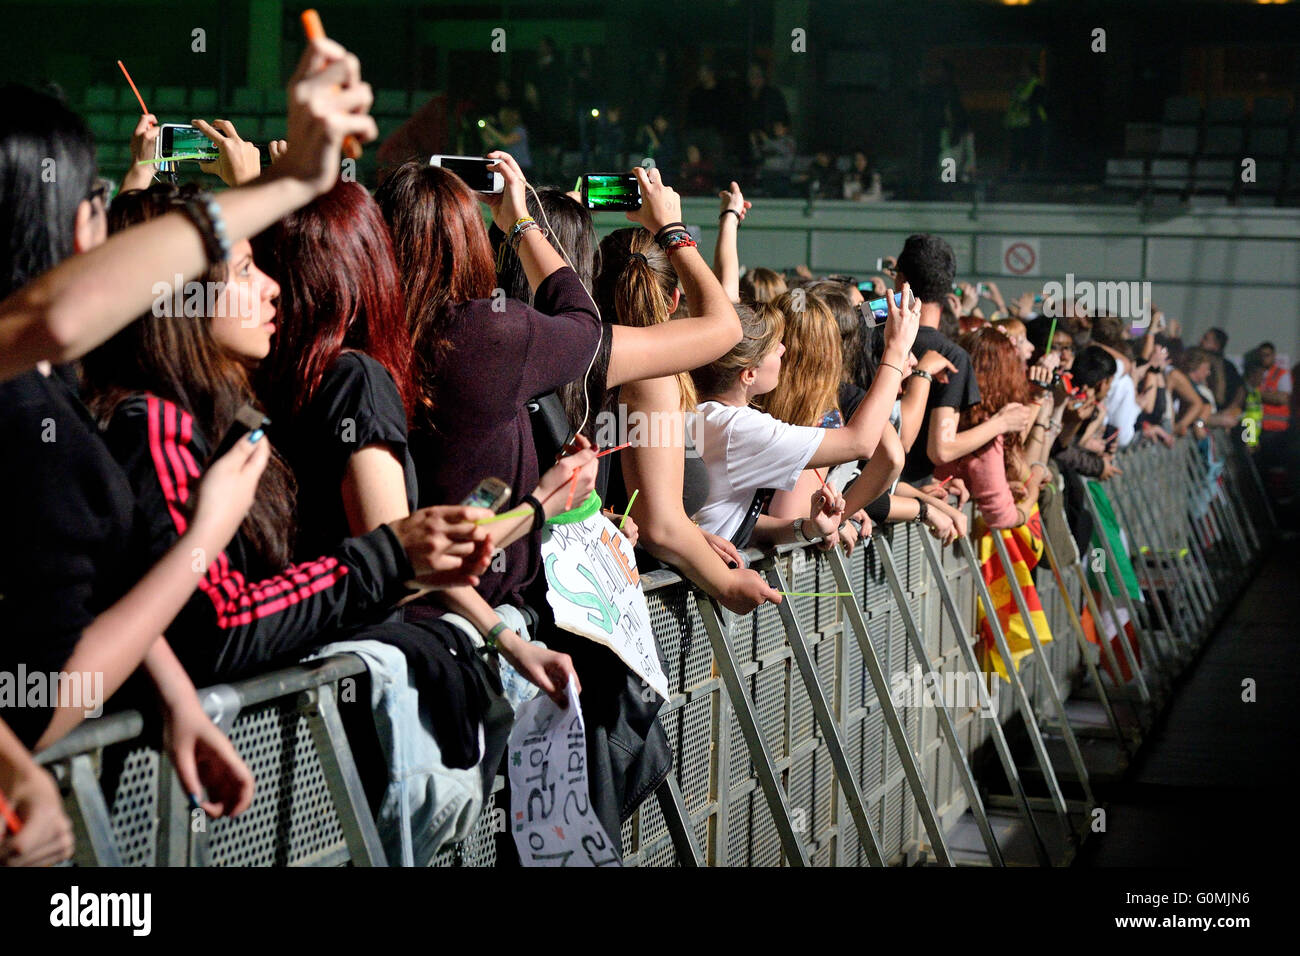 BARCELONA - 30 MAR: Menge in einem Konzert in St. Jordi Club Stadium am 18. März 2015 in Barcelona, Spanien. Stockbild